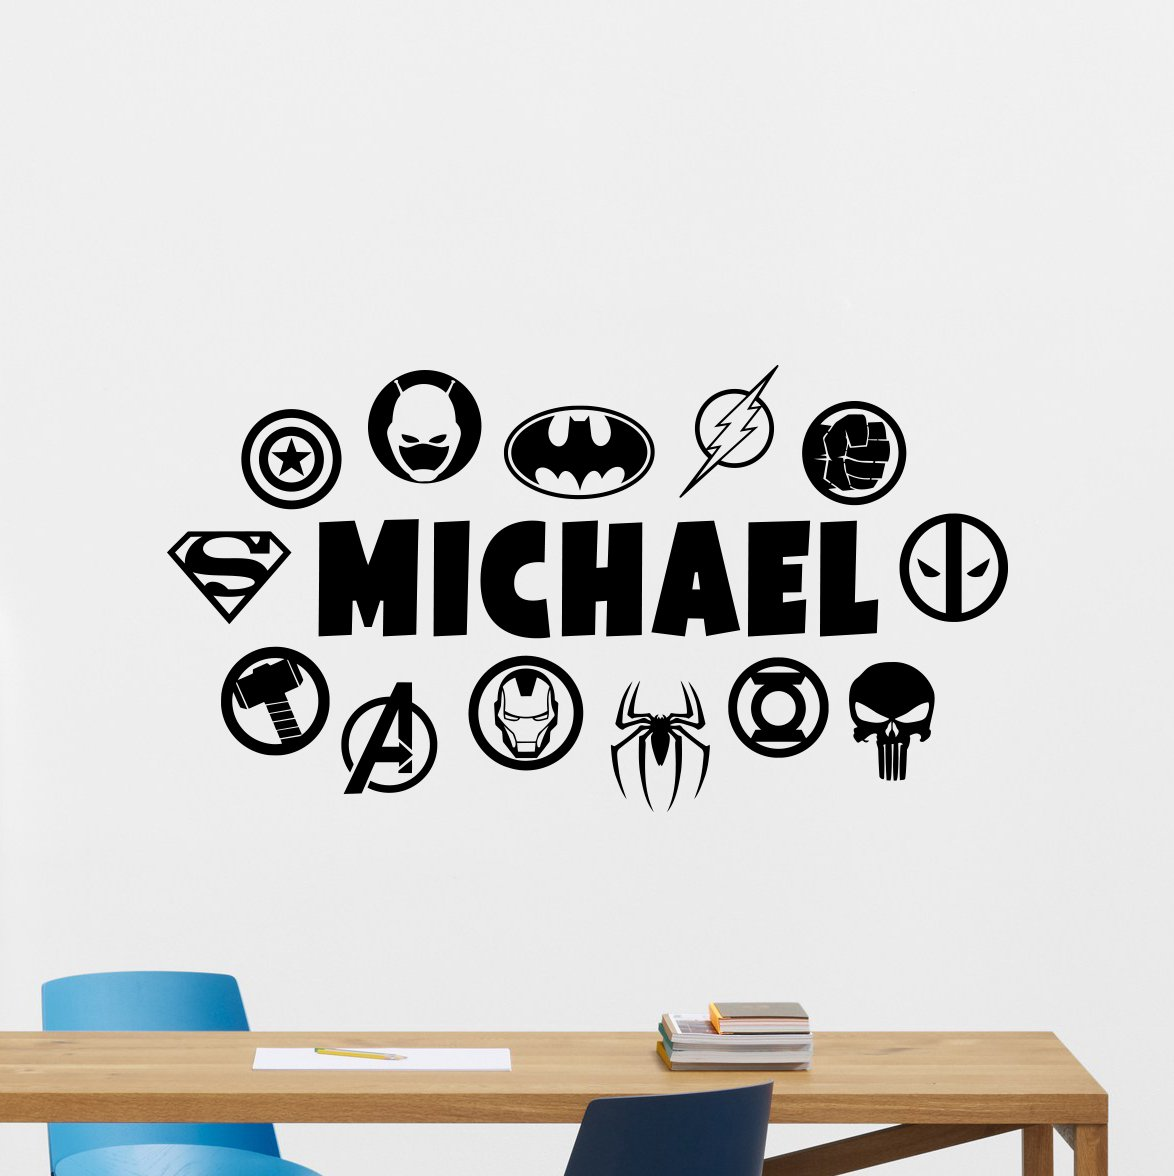 Personalized superheroes wall decal custom name dc marvel logo comics superhero vinyl sticker wall decor customized wall art kids teen boy room design ink